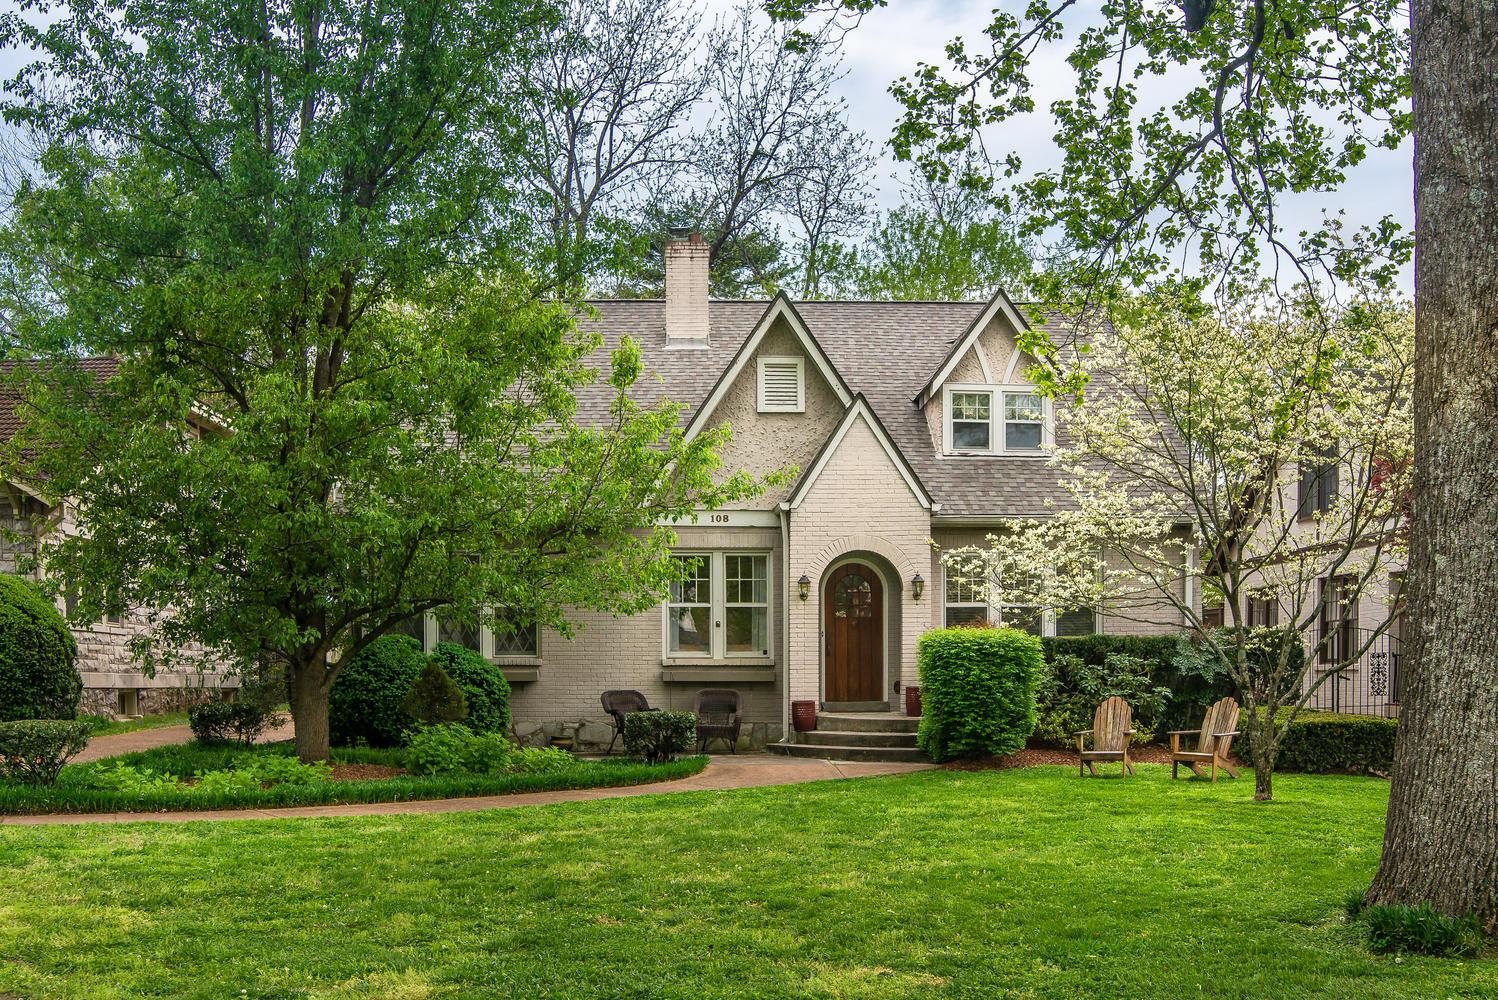 108 Blackburn Ave, Belle Meade in Davidson County County, TN 37205 Home for Sale